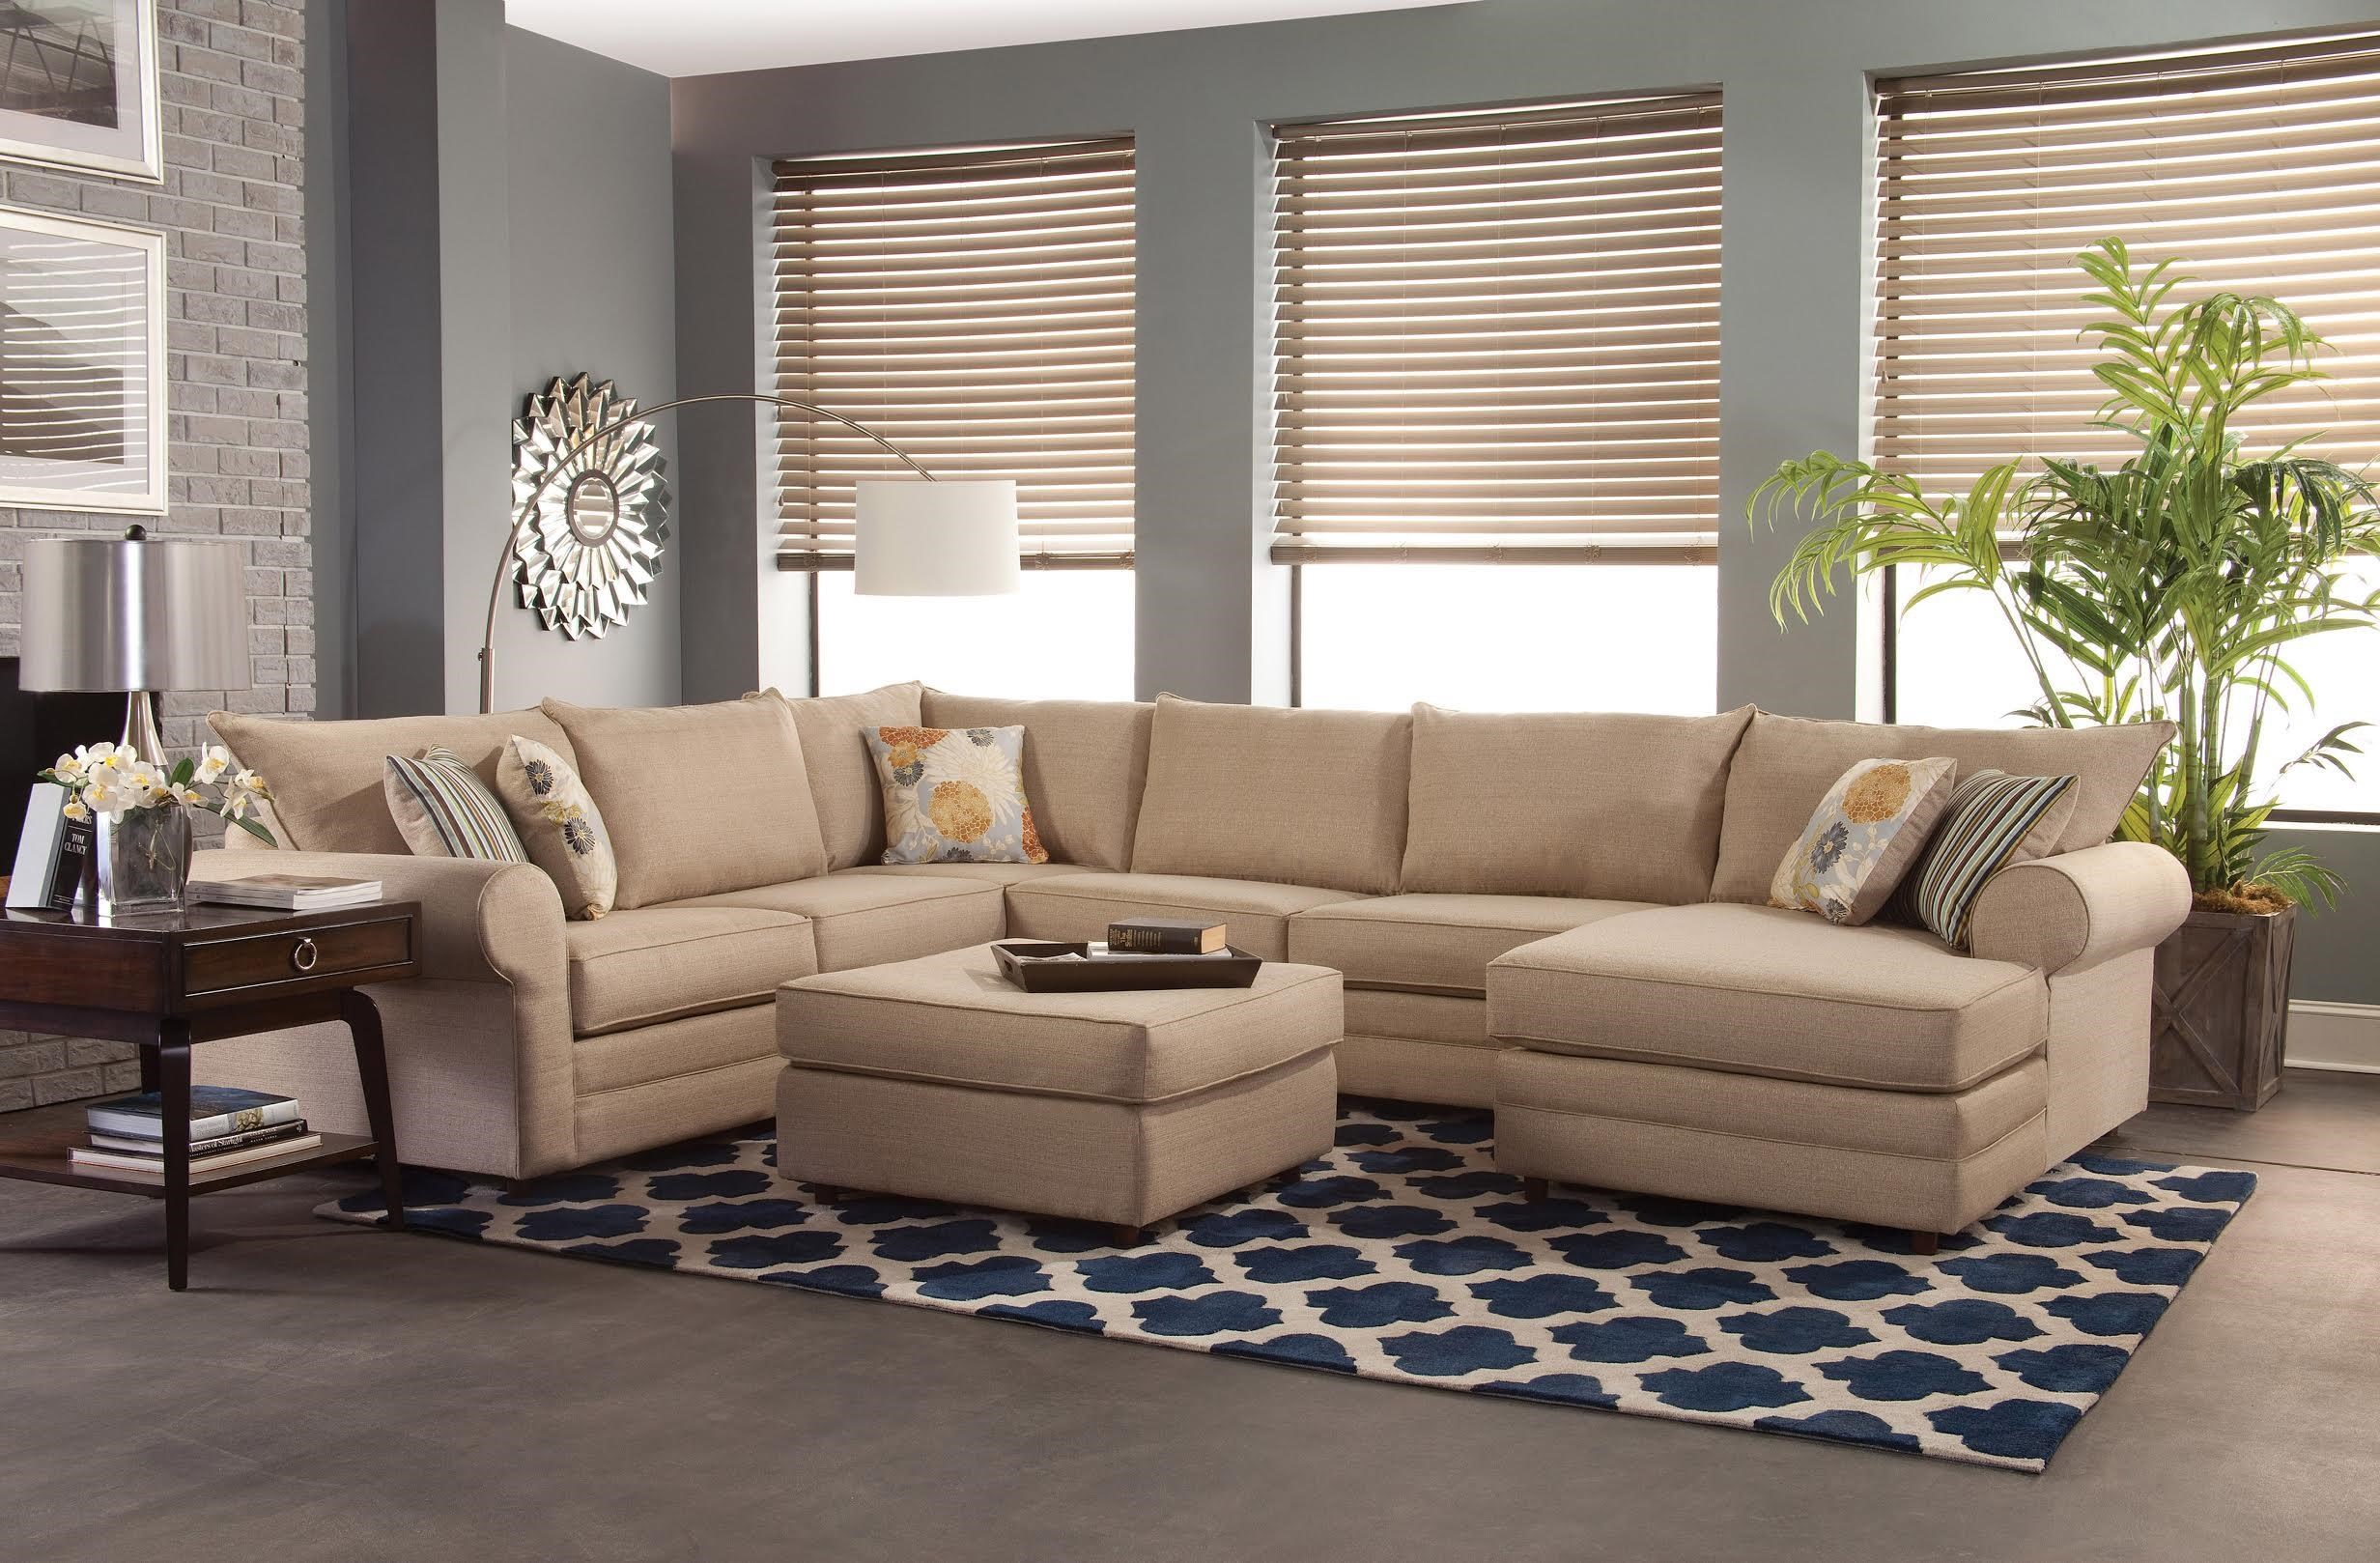 Belfort Essentials Monticello Casual Sectional Sofa